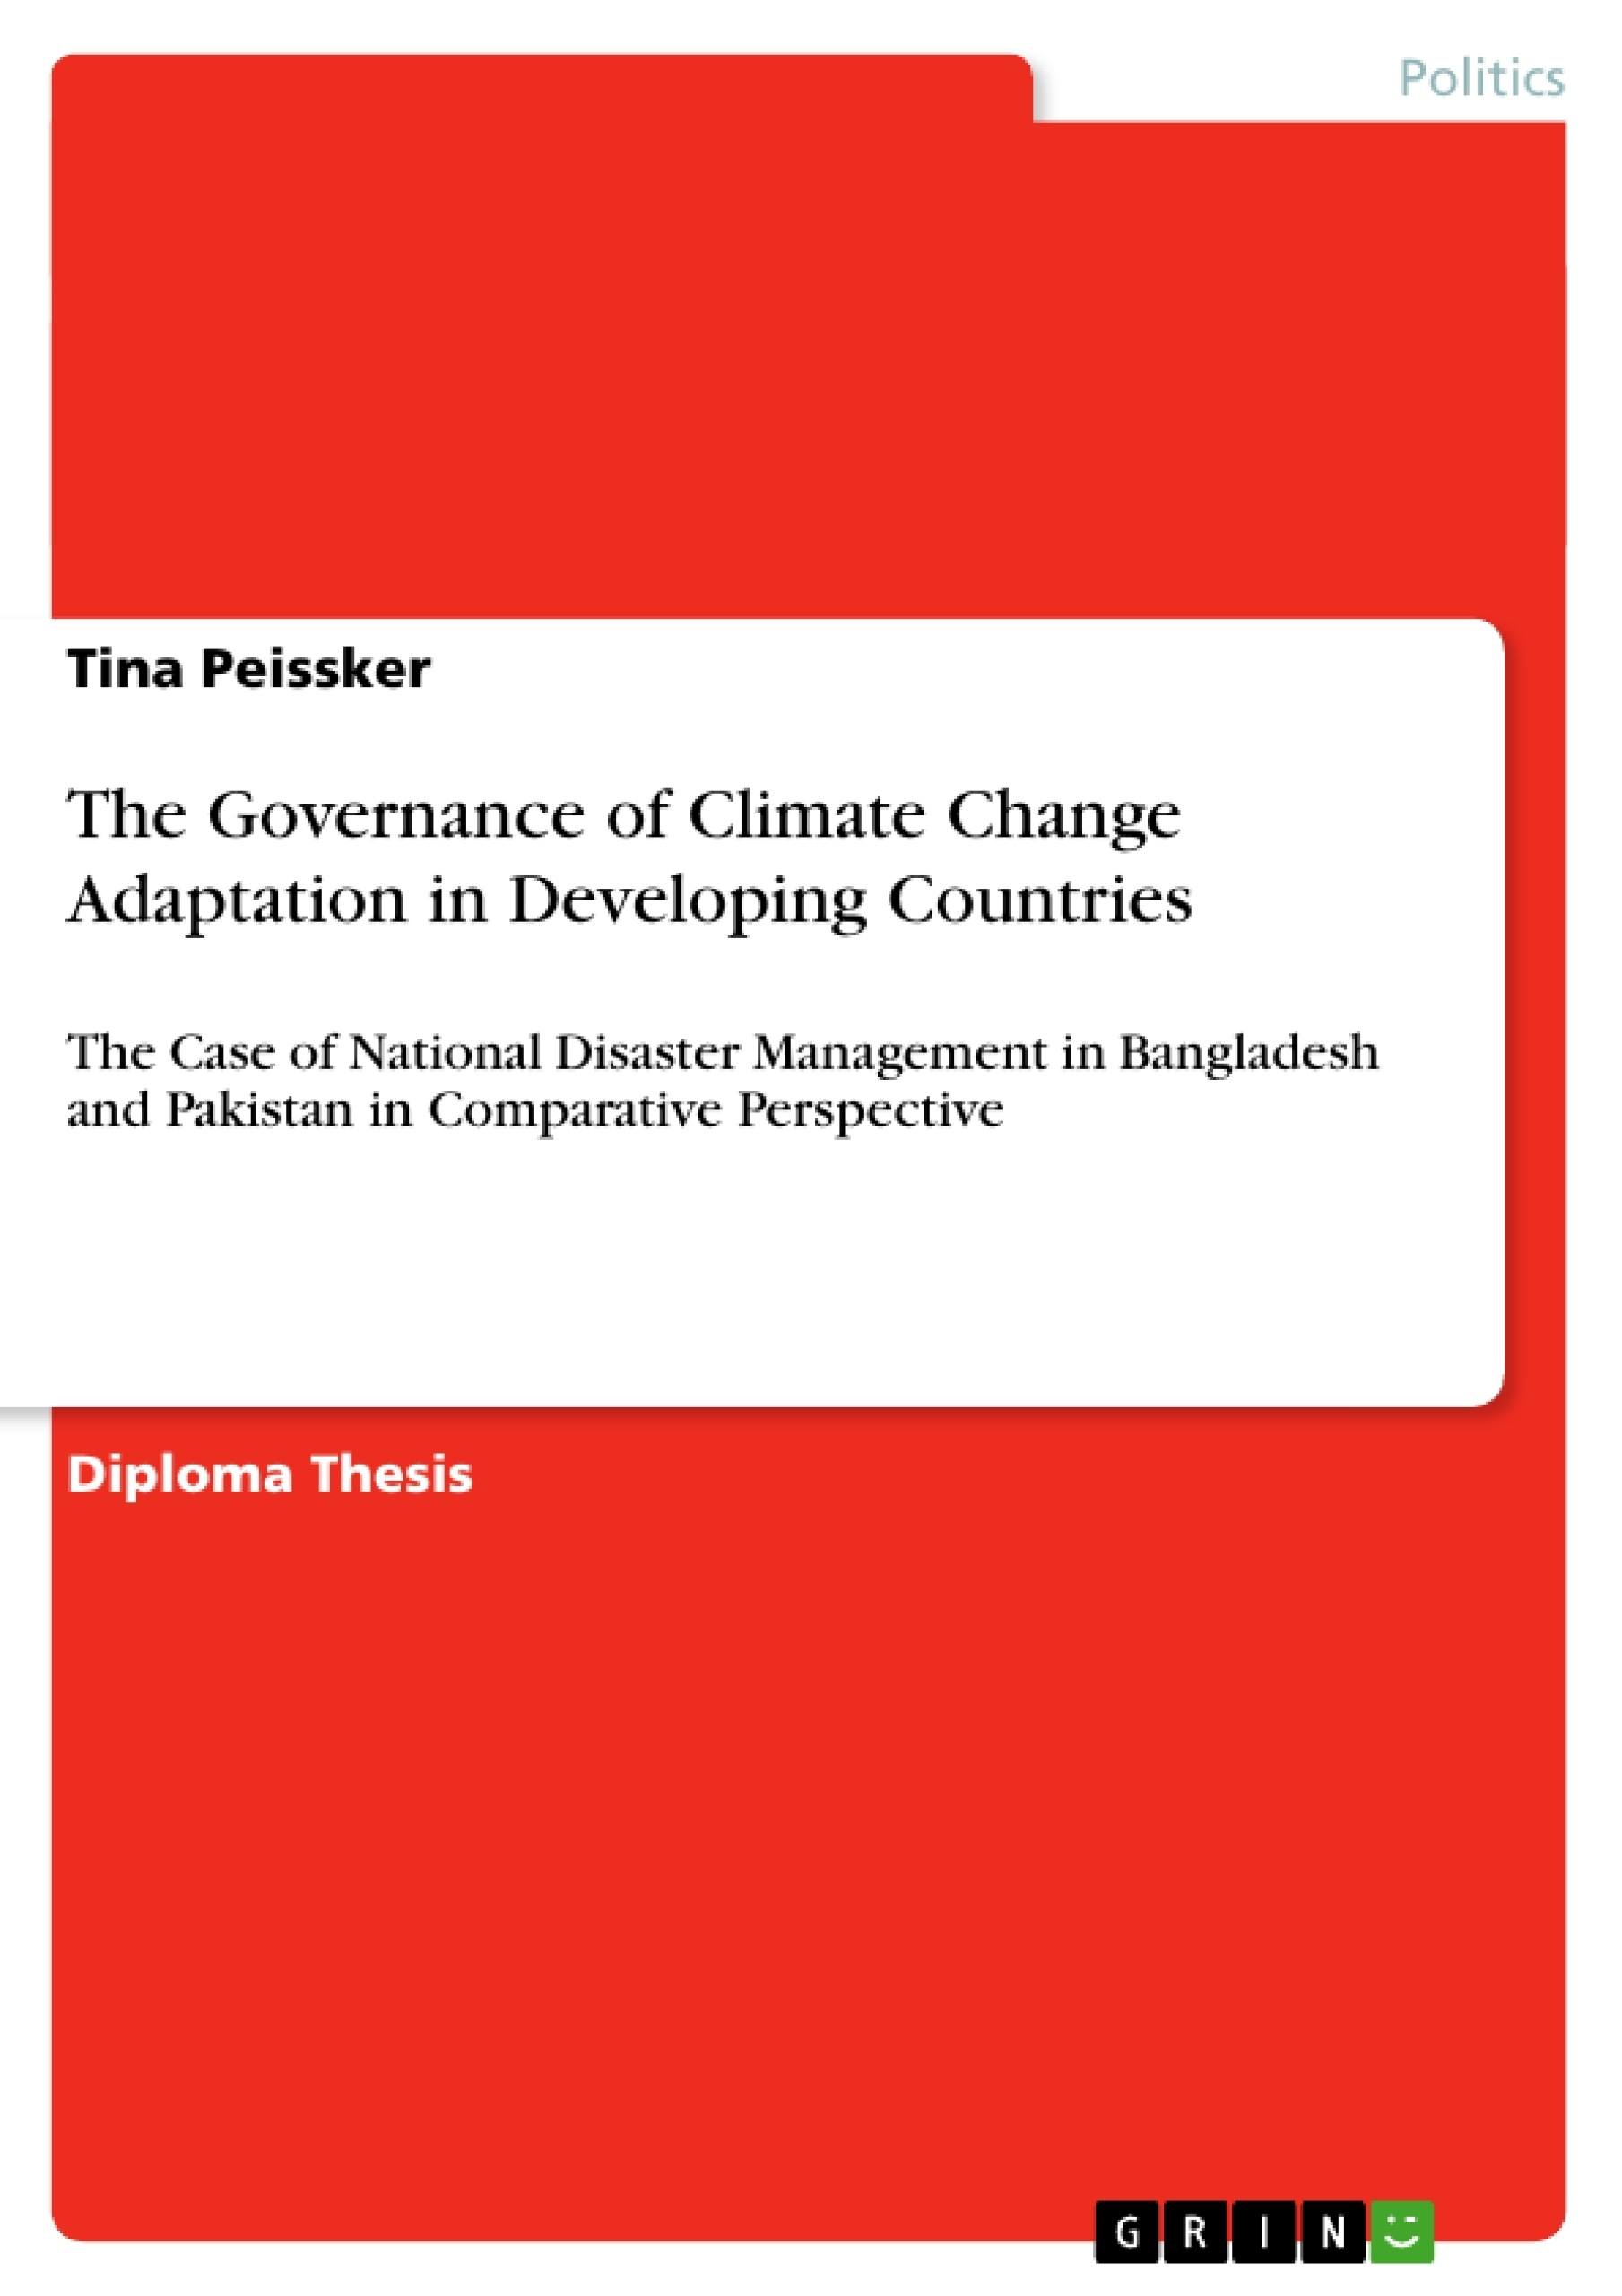 Title: The Governance of Climate Change Adaptation in Developing Countries